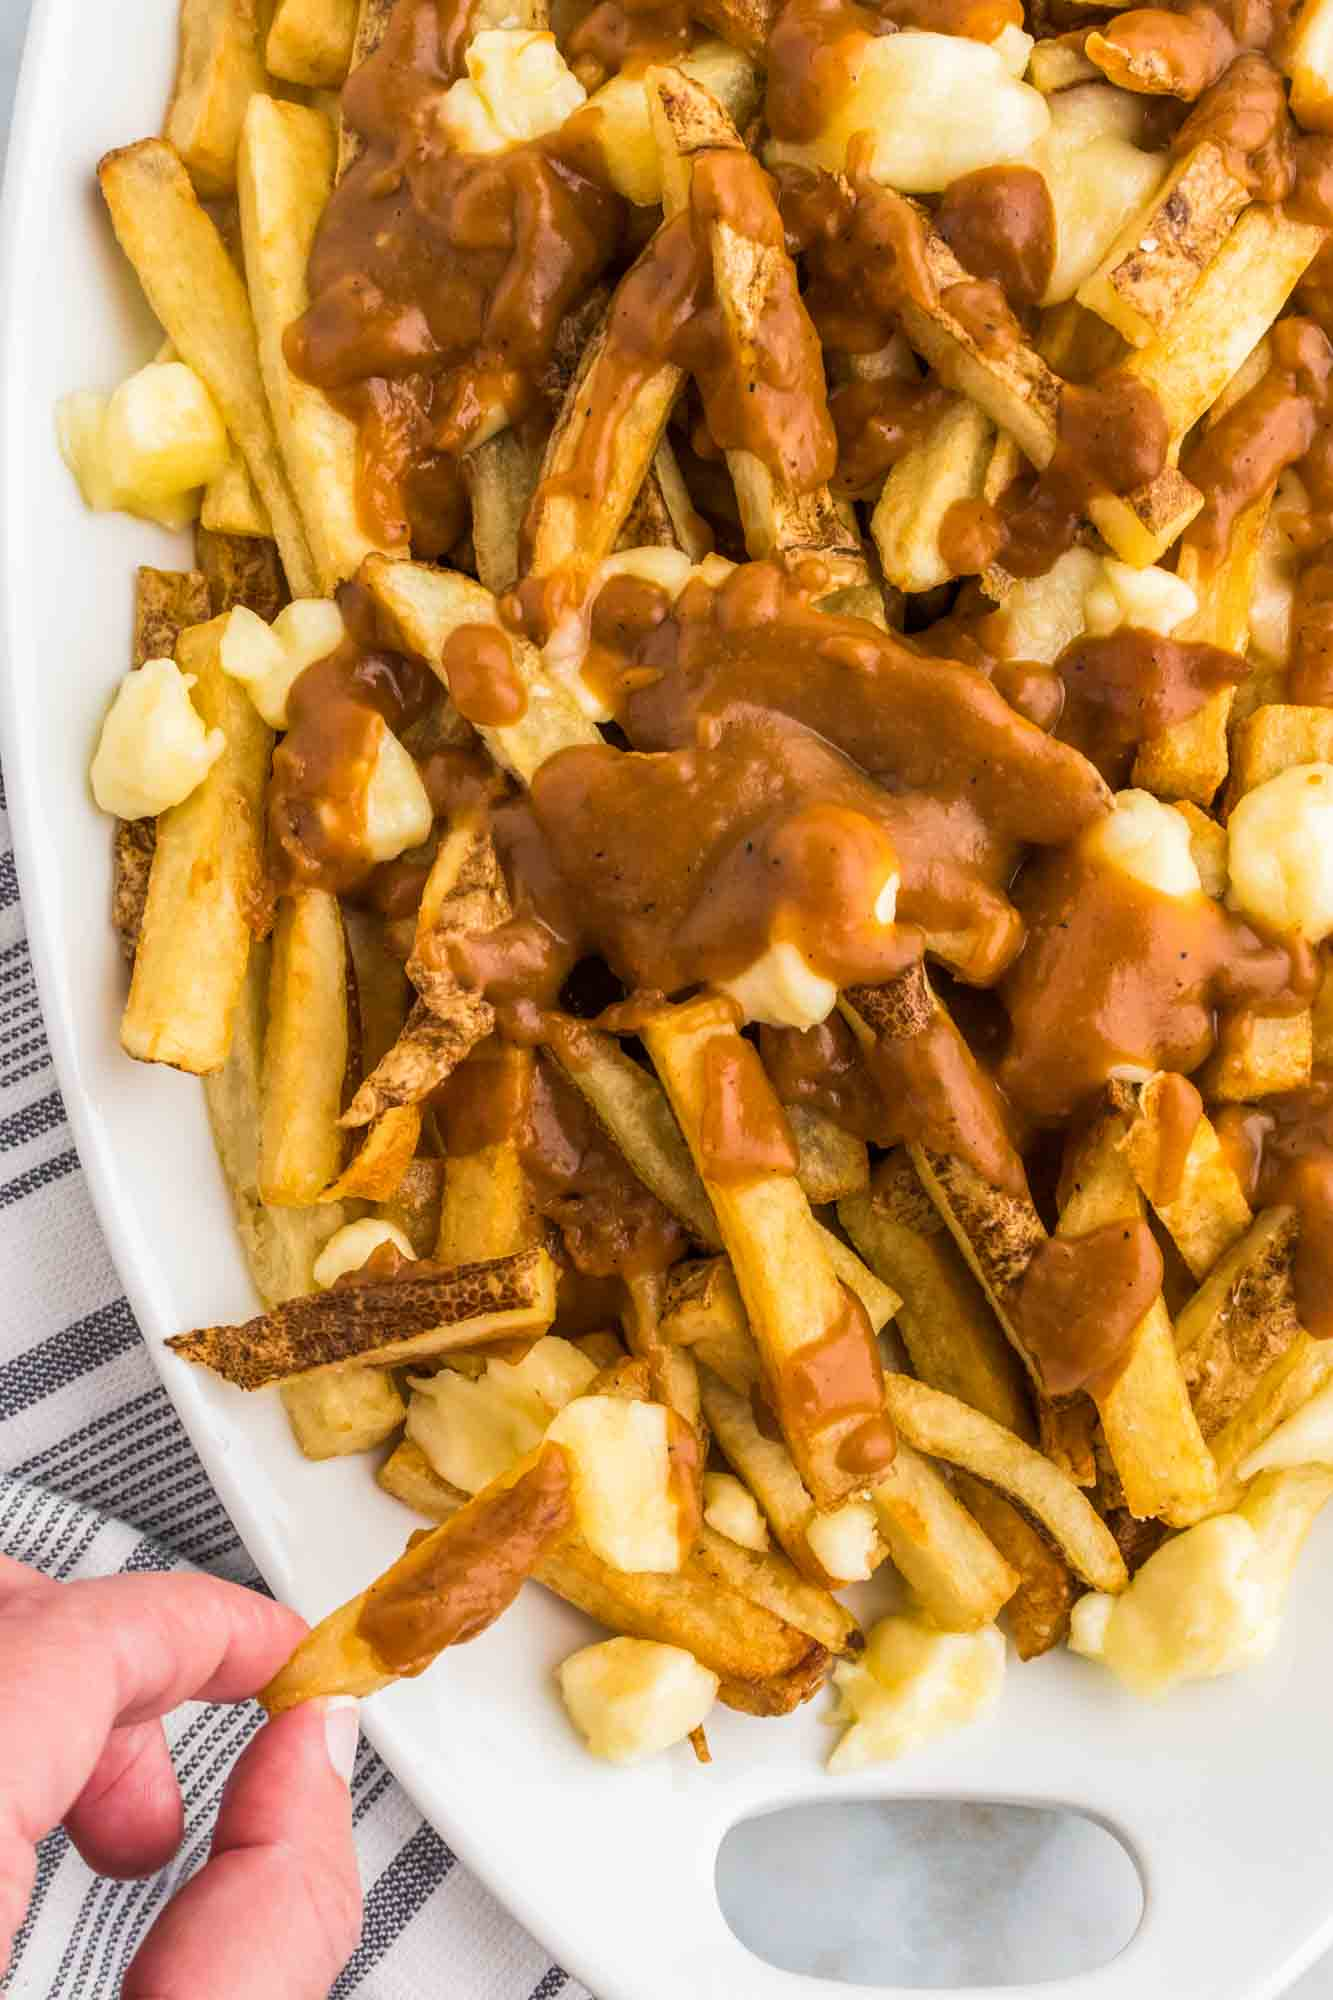 Taking a poutine fry from a platter